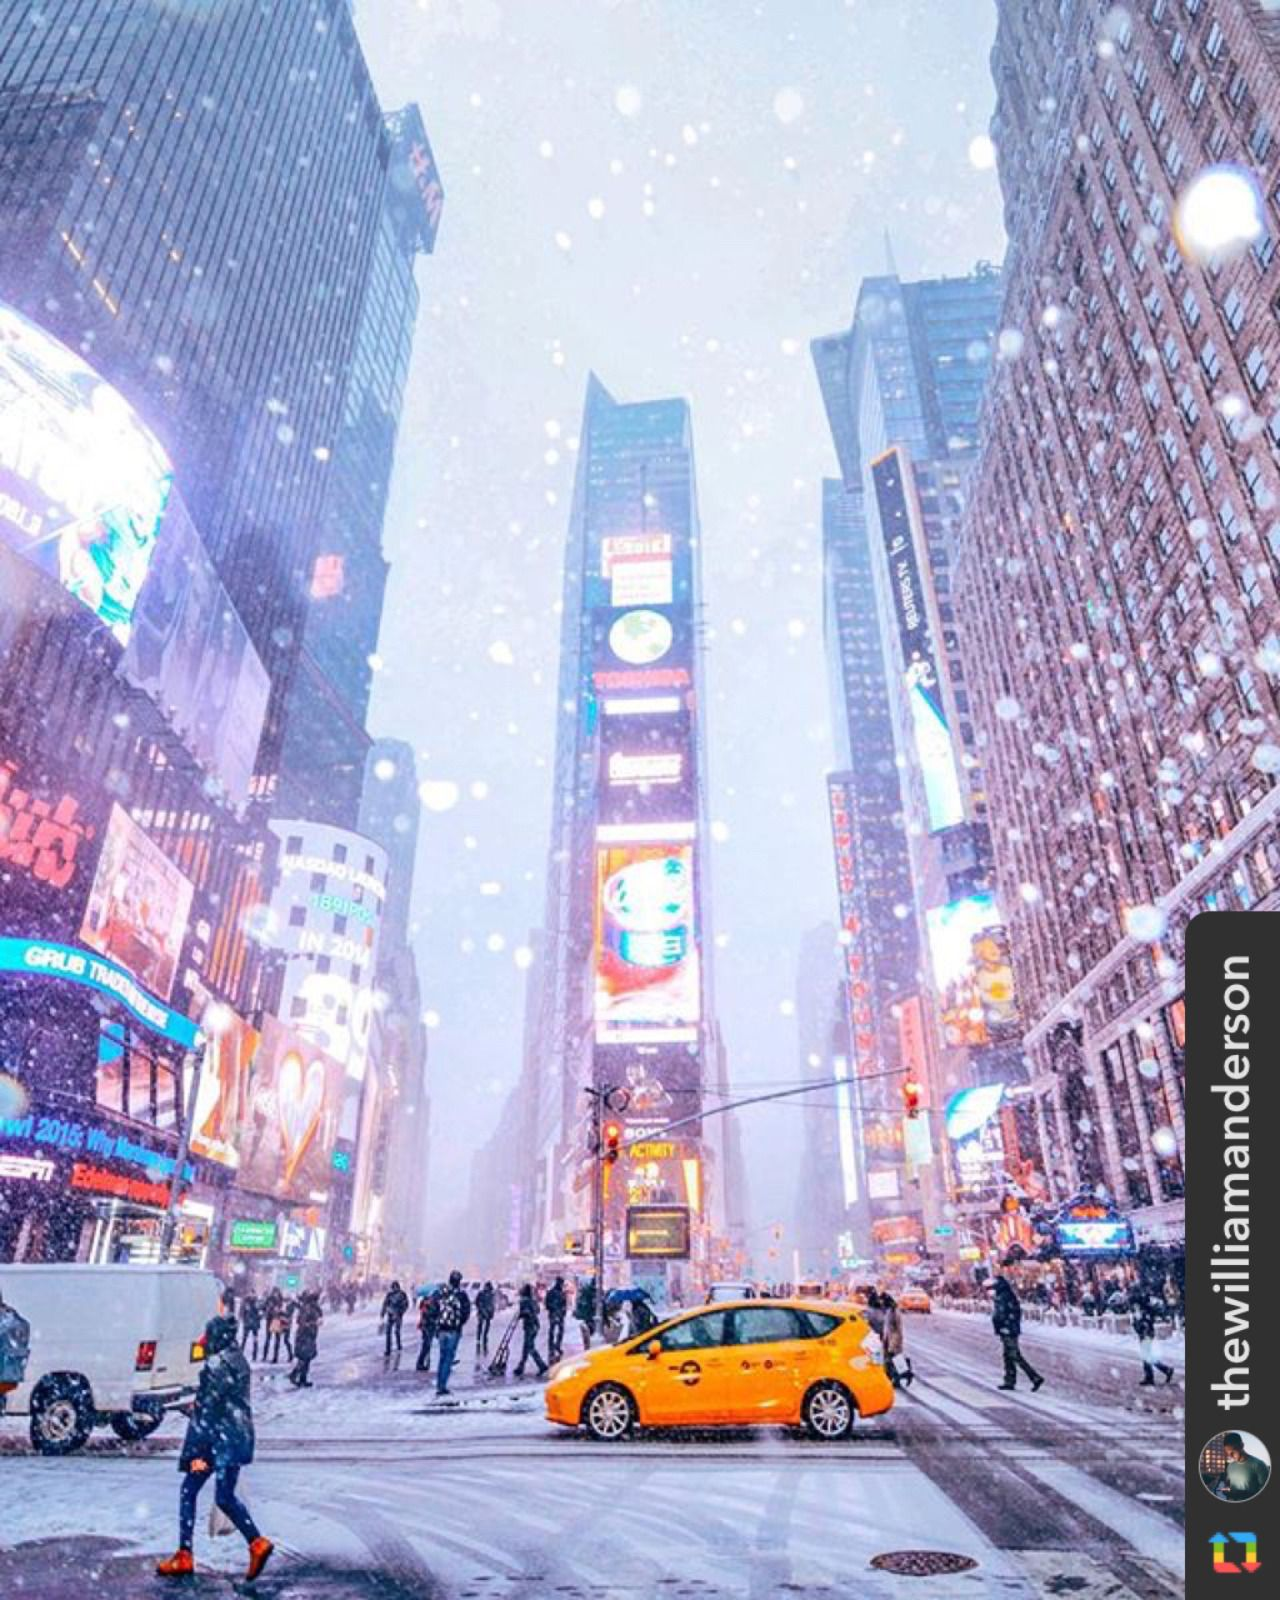 The 25 best ideas about nyc snow on pinterest new york for The best of nyc